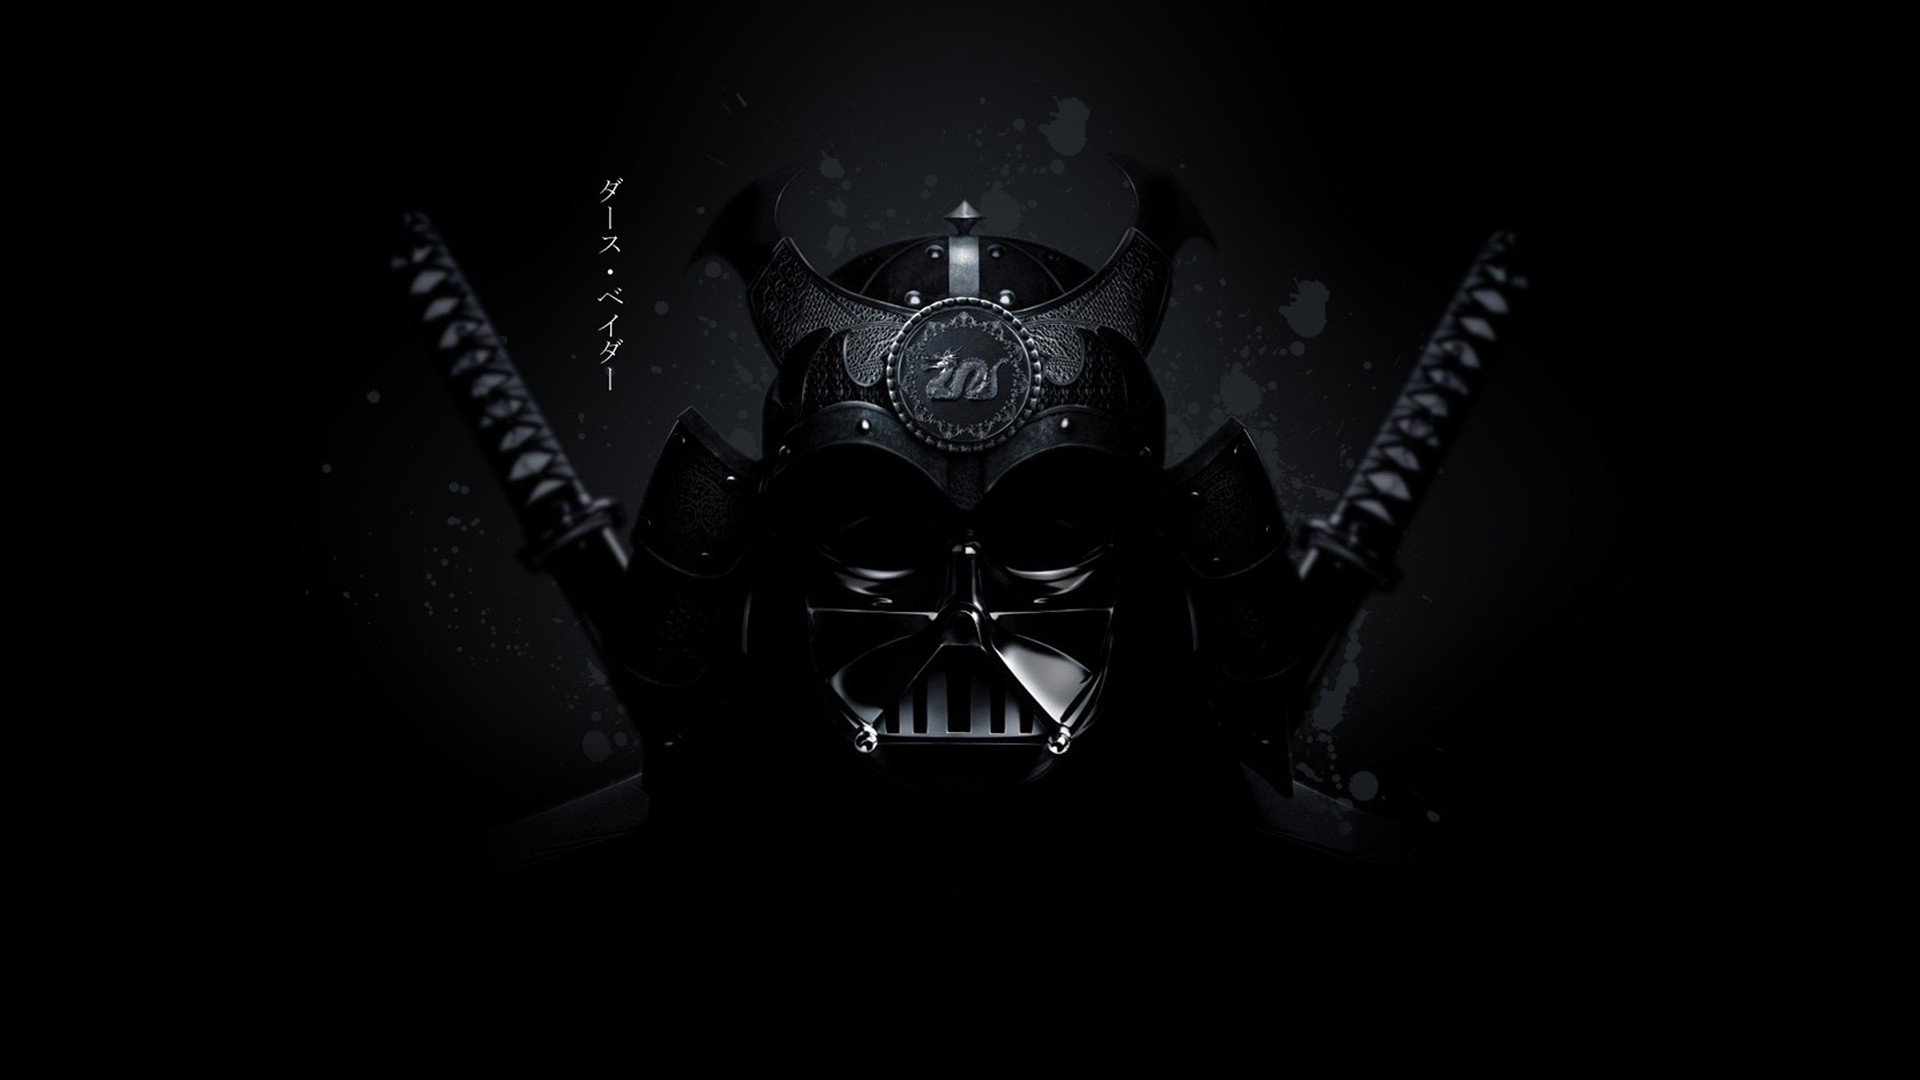 Awesome Star Wars wallpaper 1920x1080 8158 1920x1080